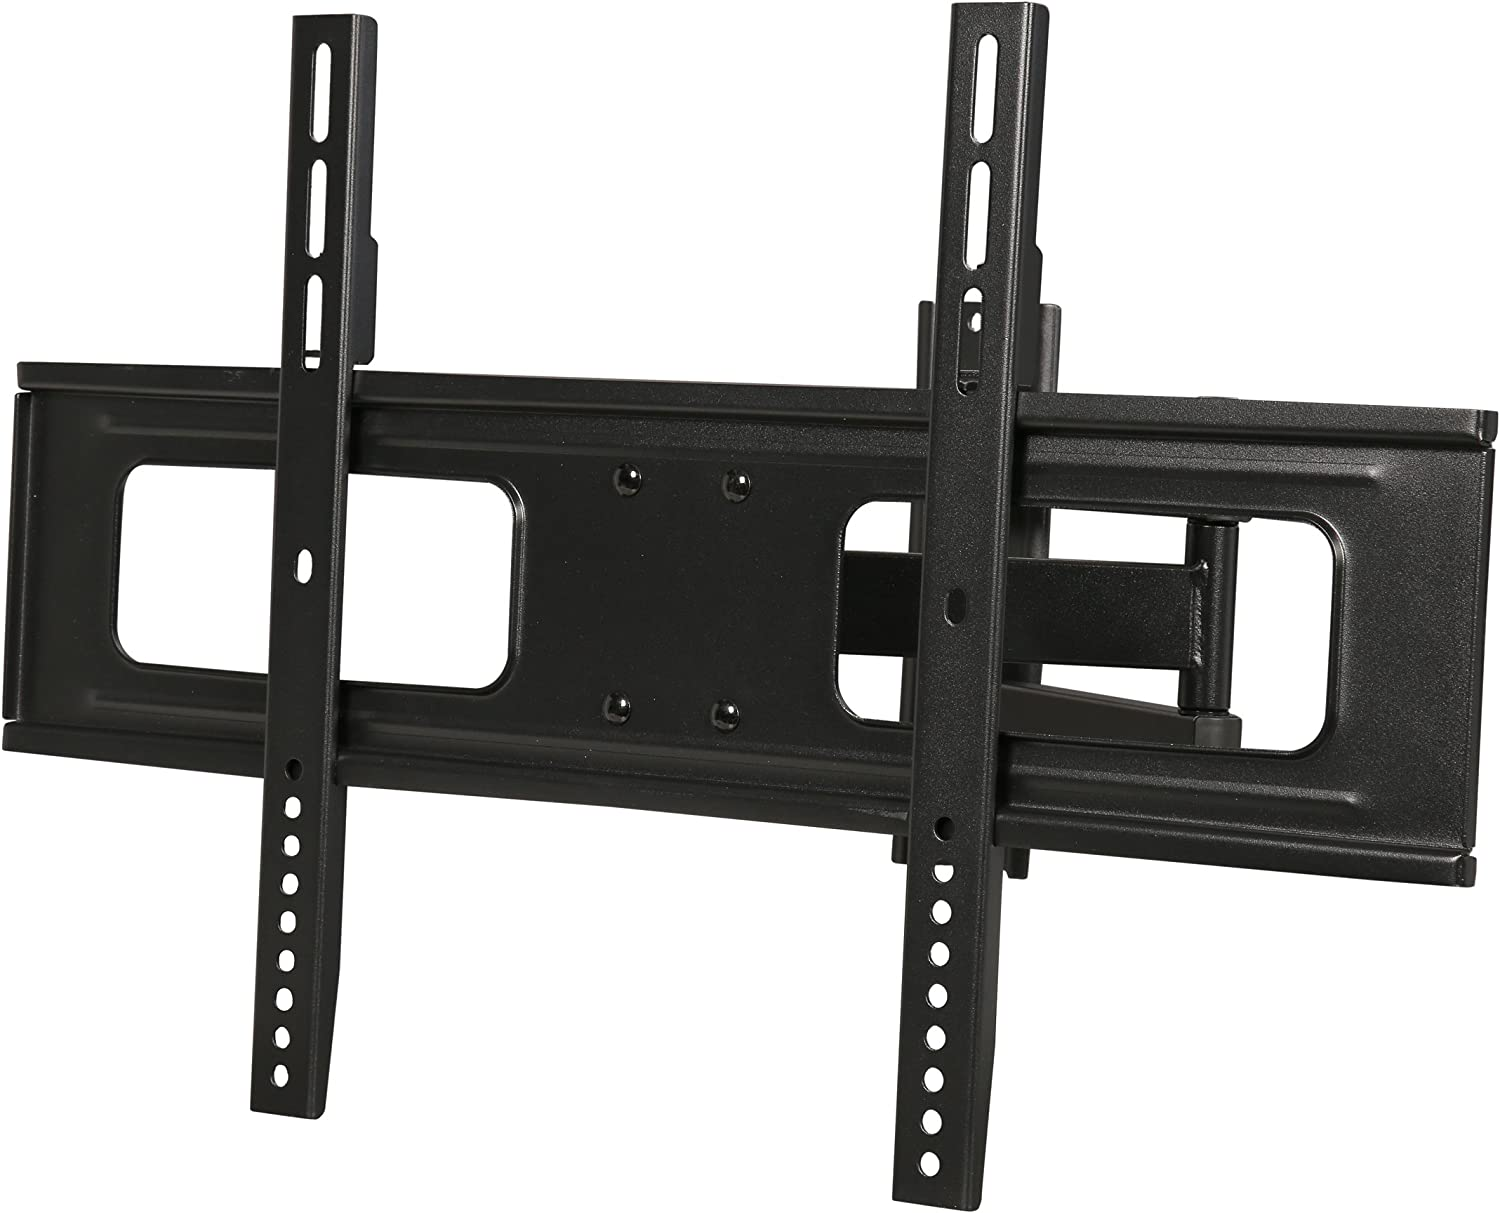 """Rosewill TV Wall Mount Bracket for Most 37""""-70"""" LED LCD TV Monitors up to 110lbs VESA 600x400mm with Full Motion Tilt and Swivel 18.6"""" Extension Arm 6 ft 4K HDMI Cable RHTB-17001"""